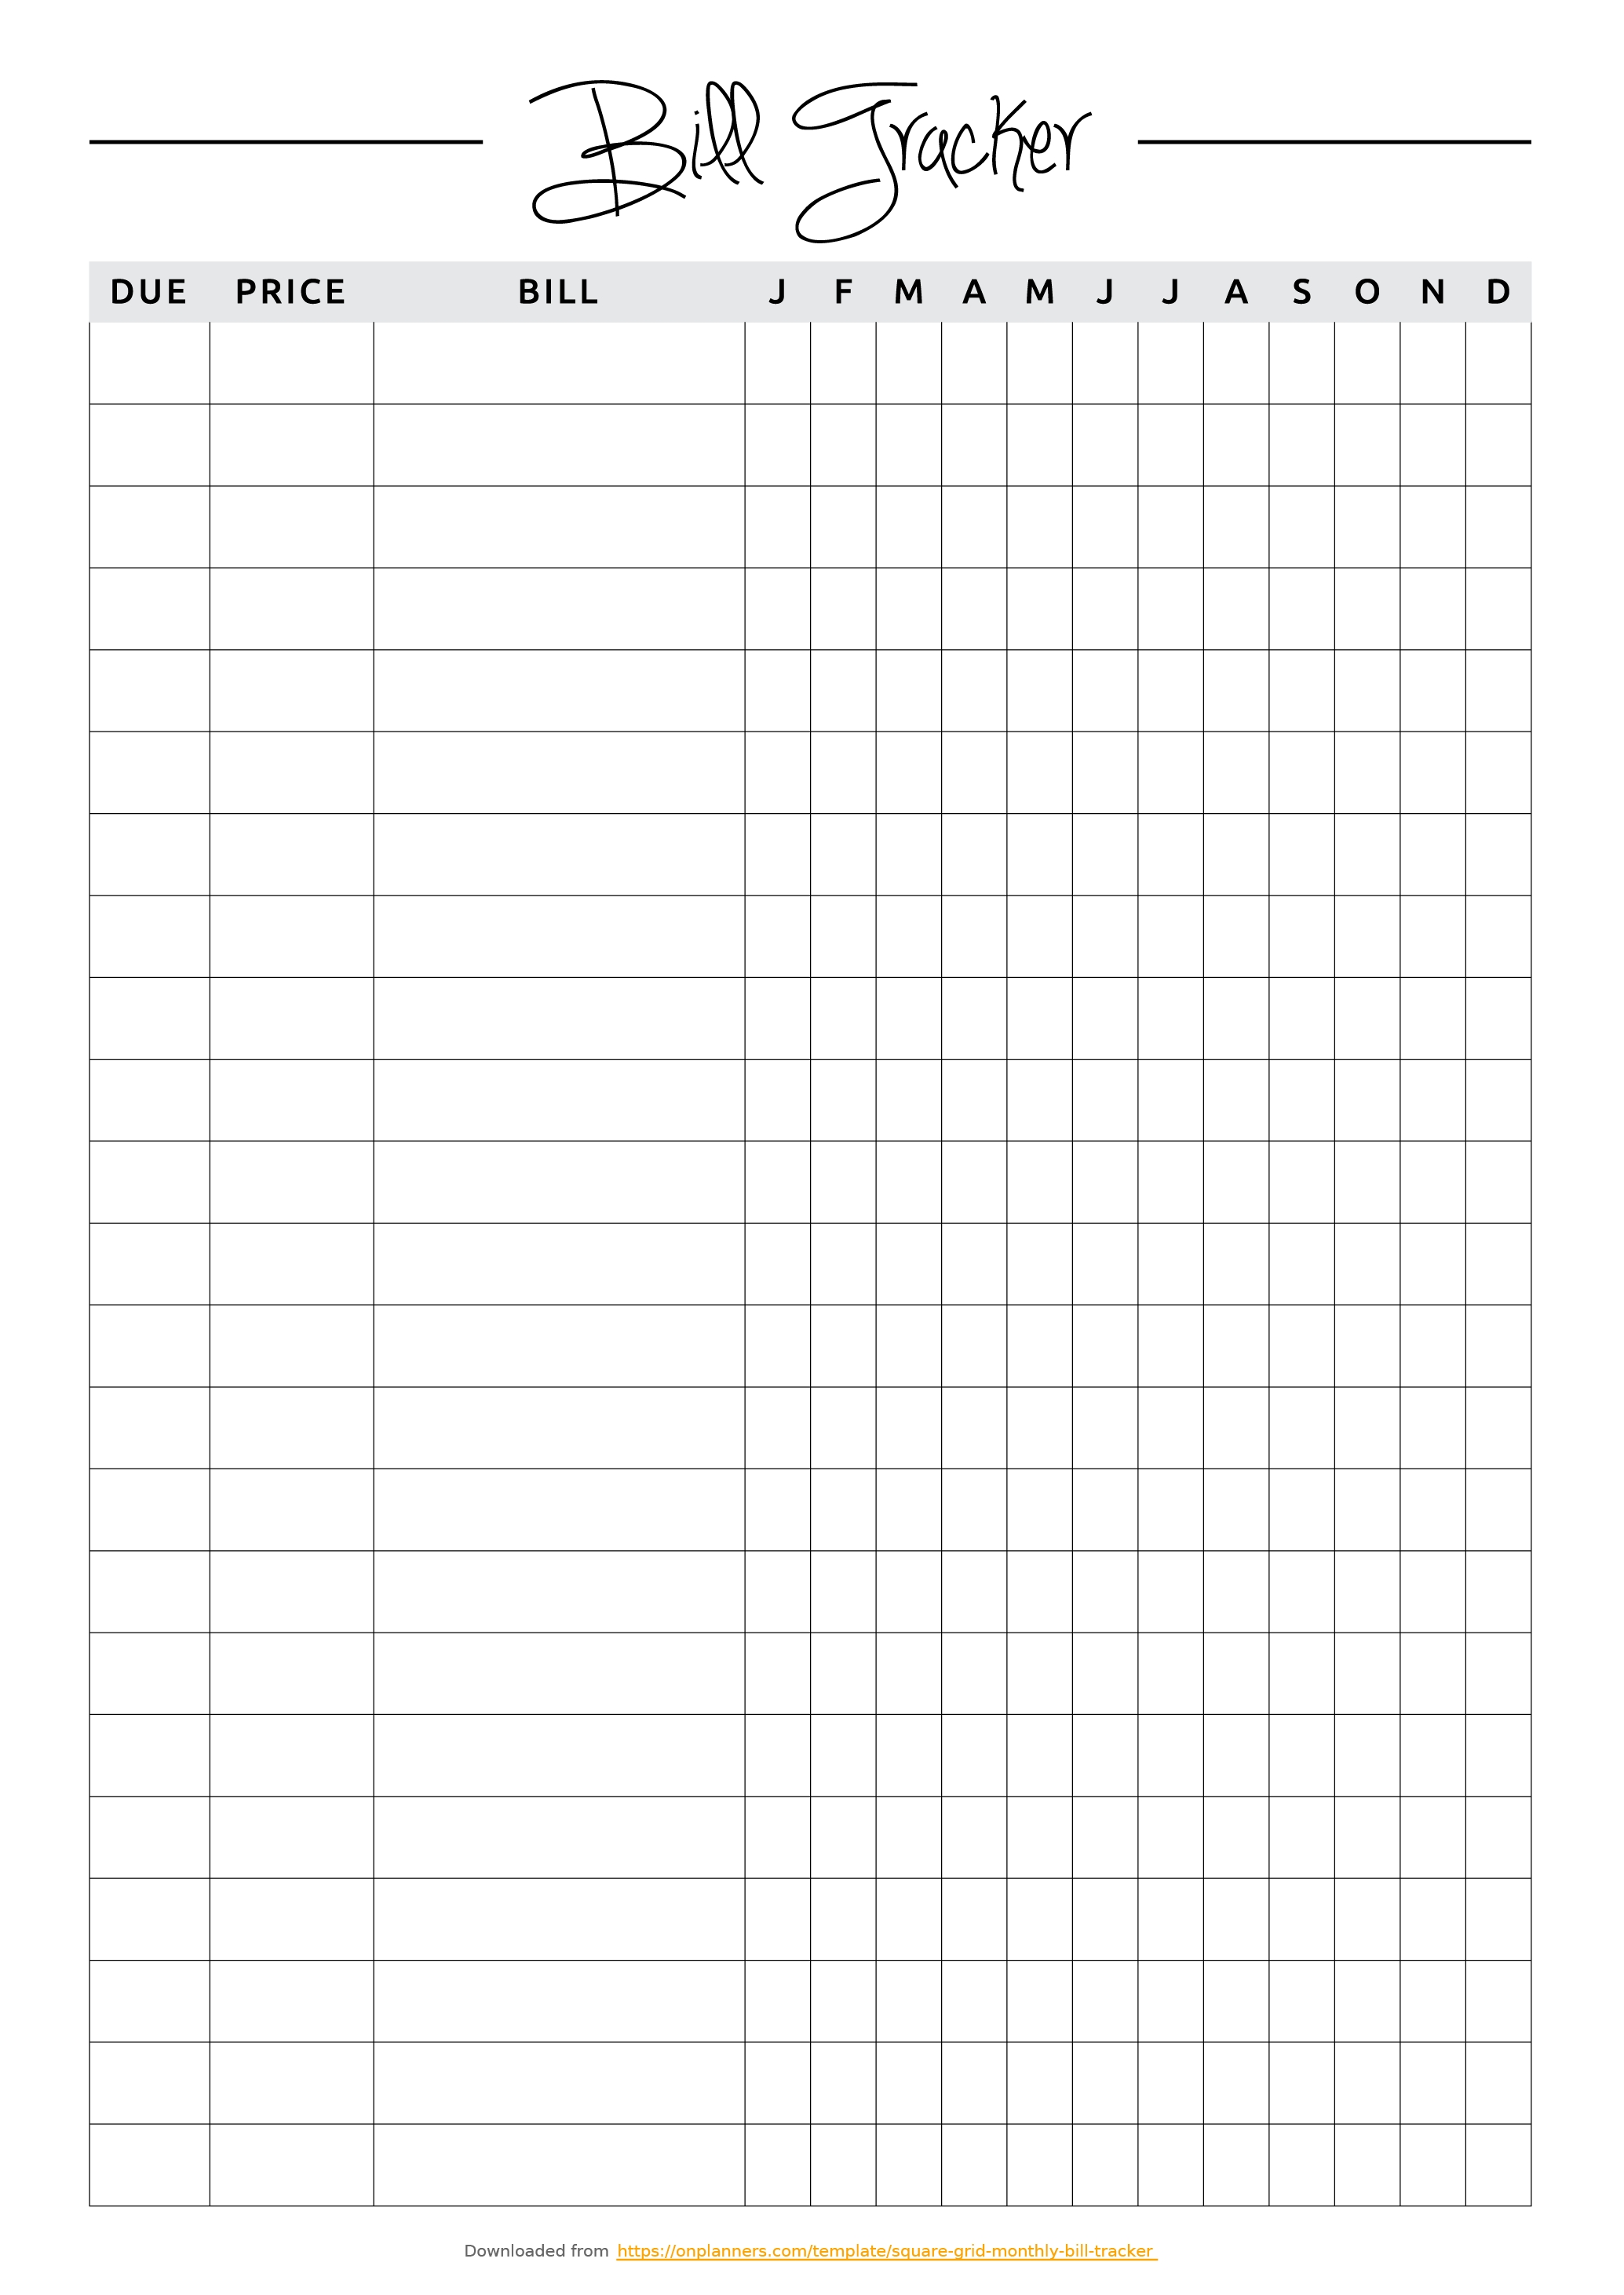 Free Printable Square Grid Monthly Bill Tracker Pdf Download pertaining to Free Printable Monthly Bill Tracker